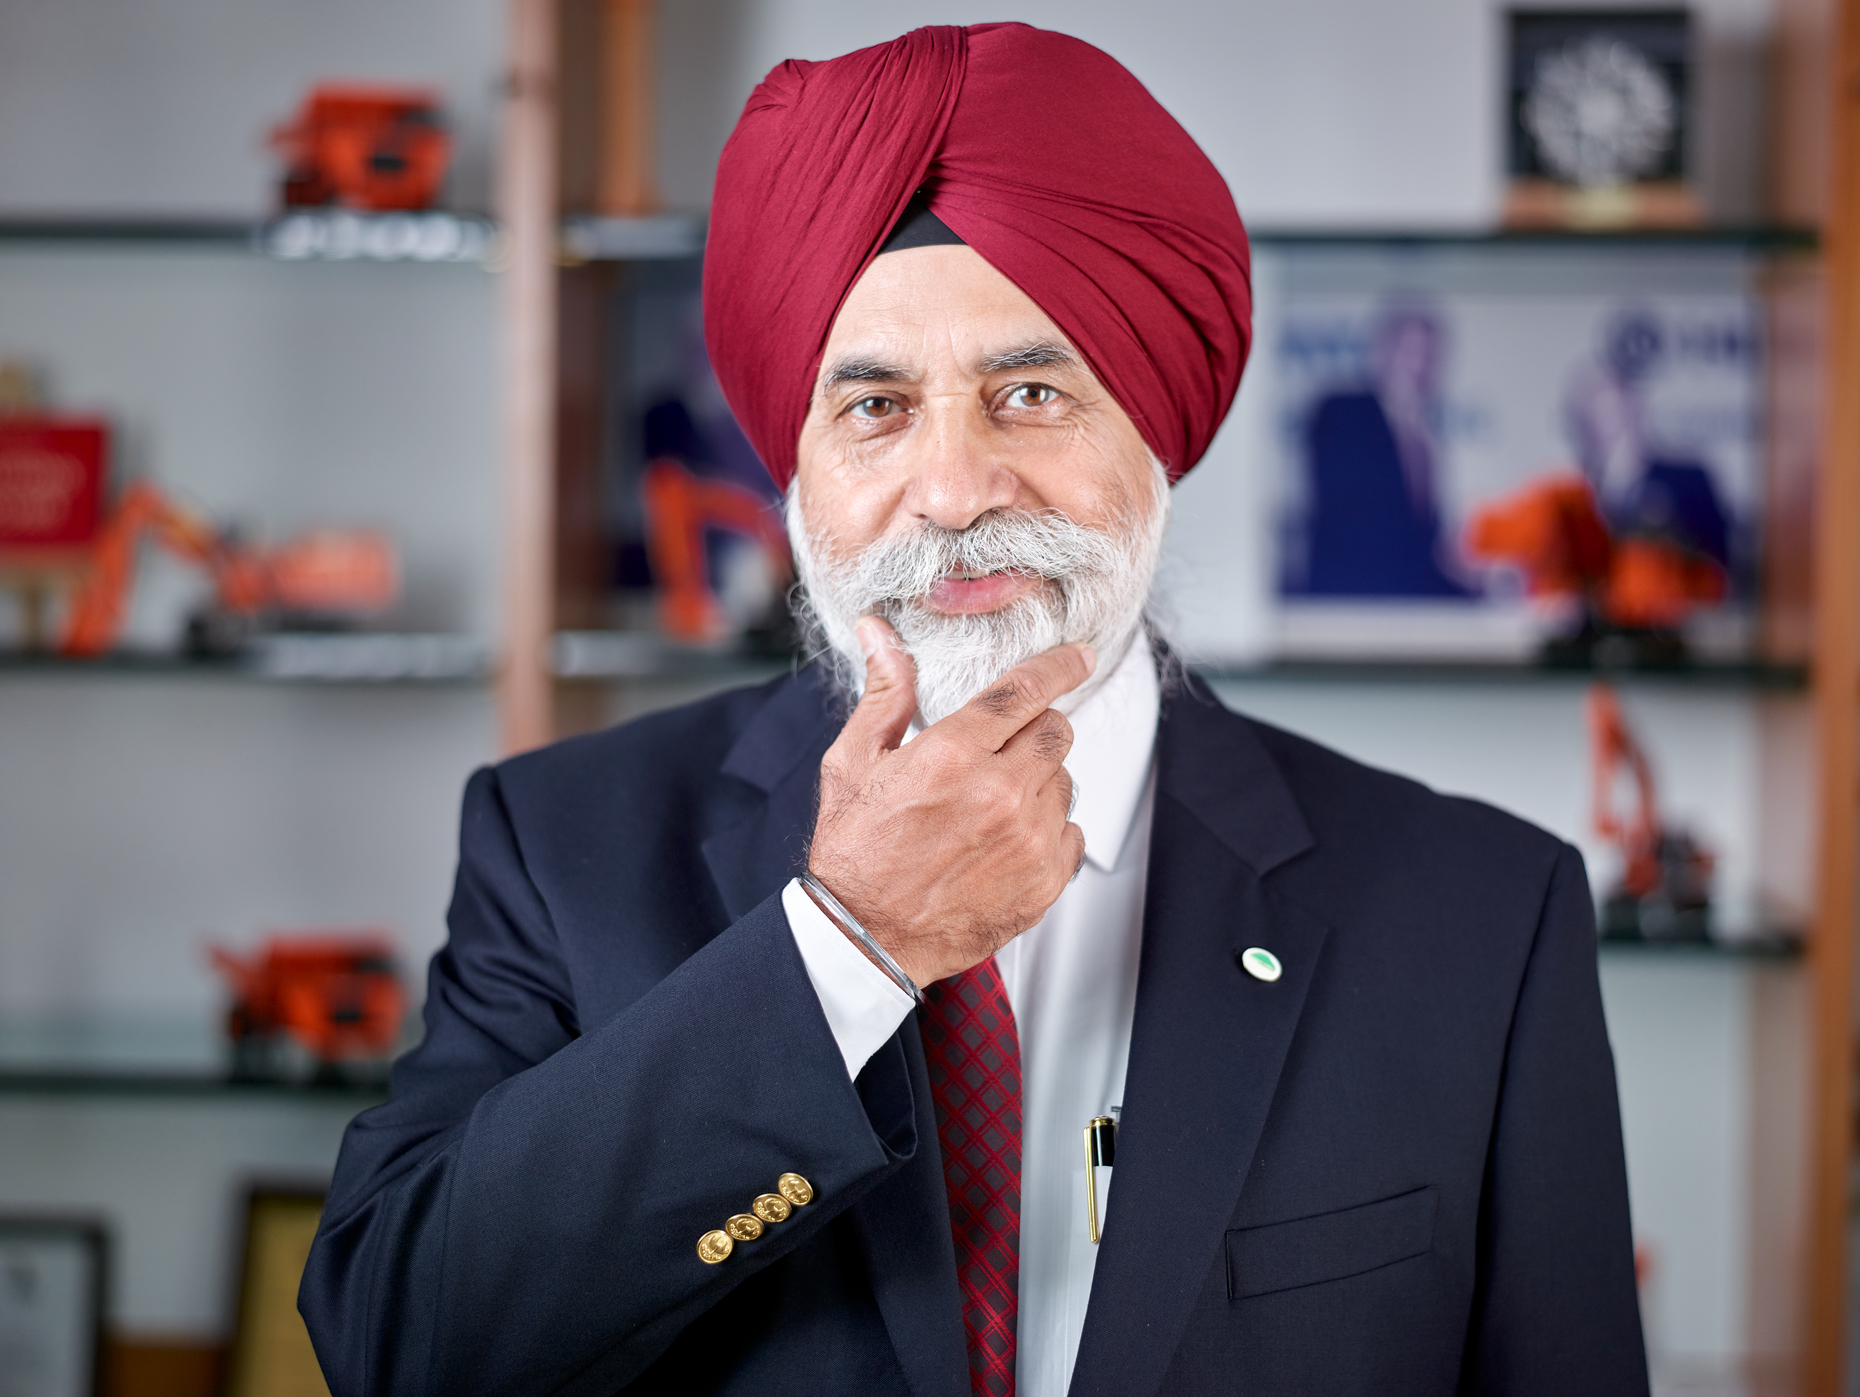 Sandeep Singh, Managing Director of Tata Hitachi Construction Machinery Co. Ltd